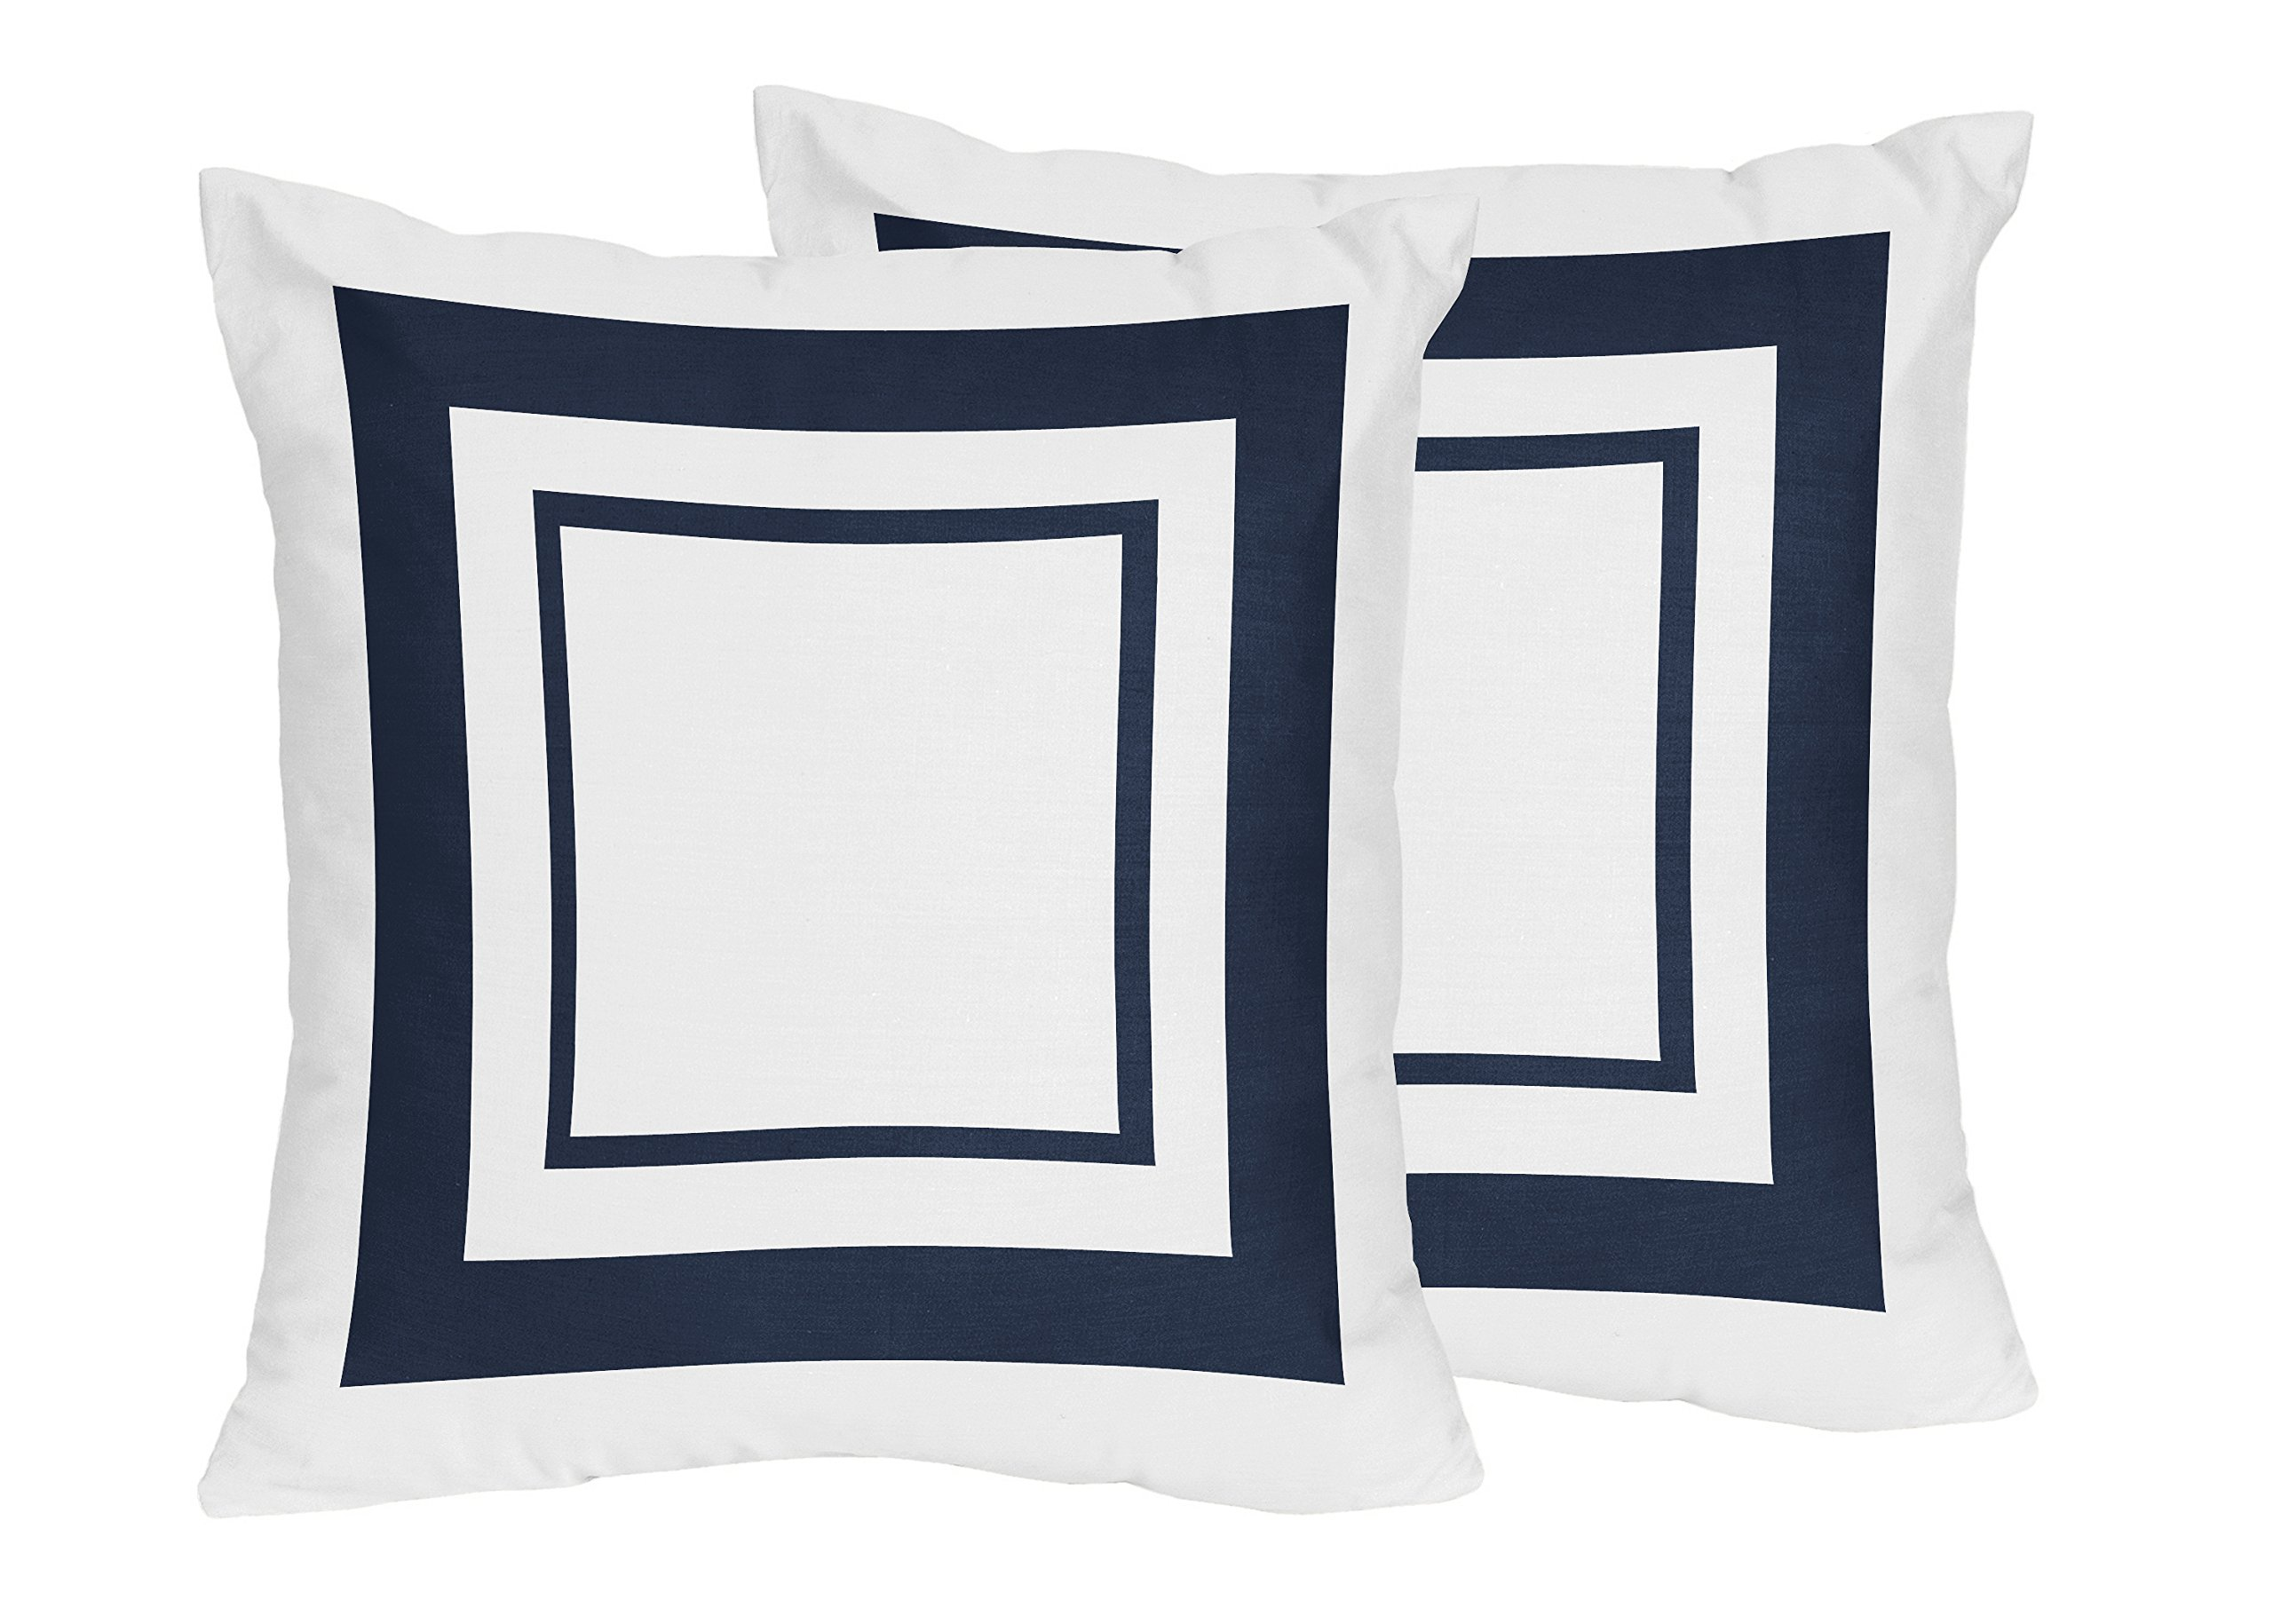 Sweet Jojo Designs 2-Piece Contemporary White and Navy Blue Modern Hotel Decorative Accent Throw Pillows by Sweet Jojo Designs